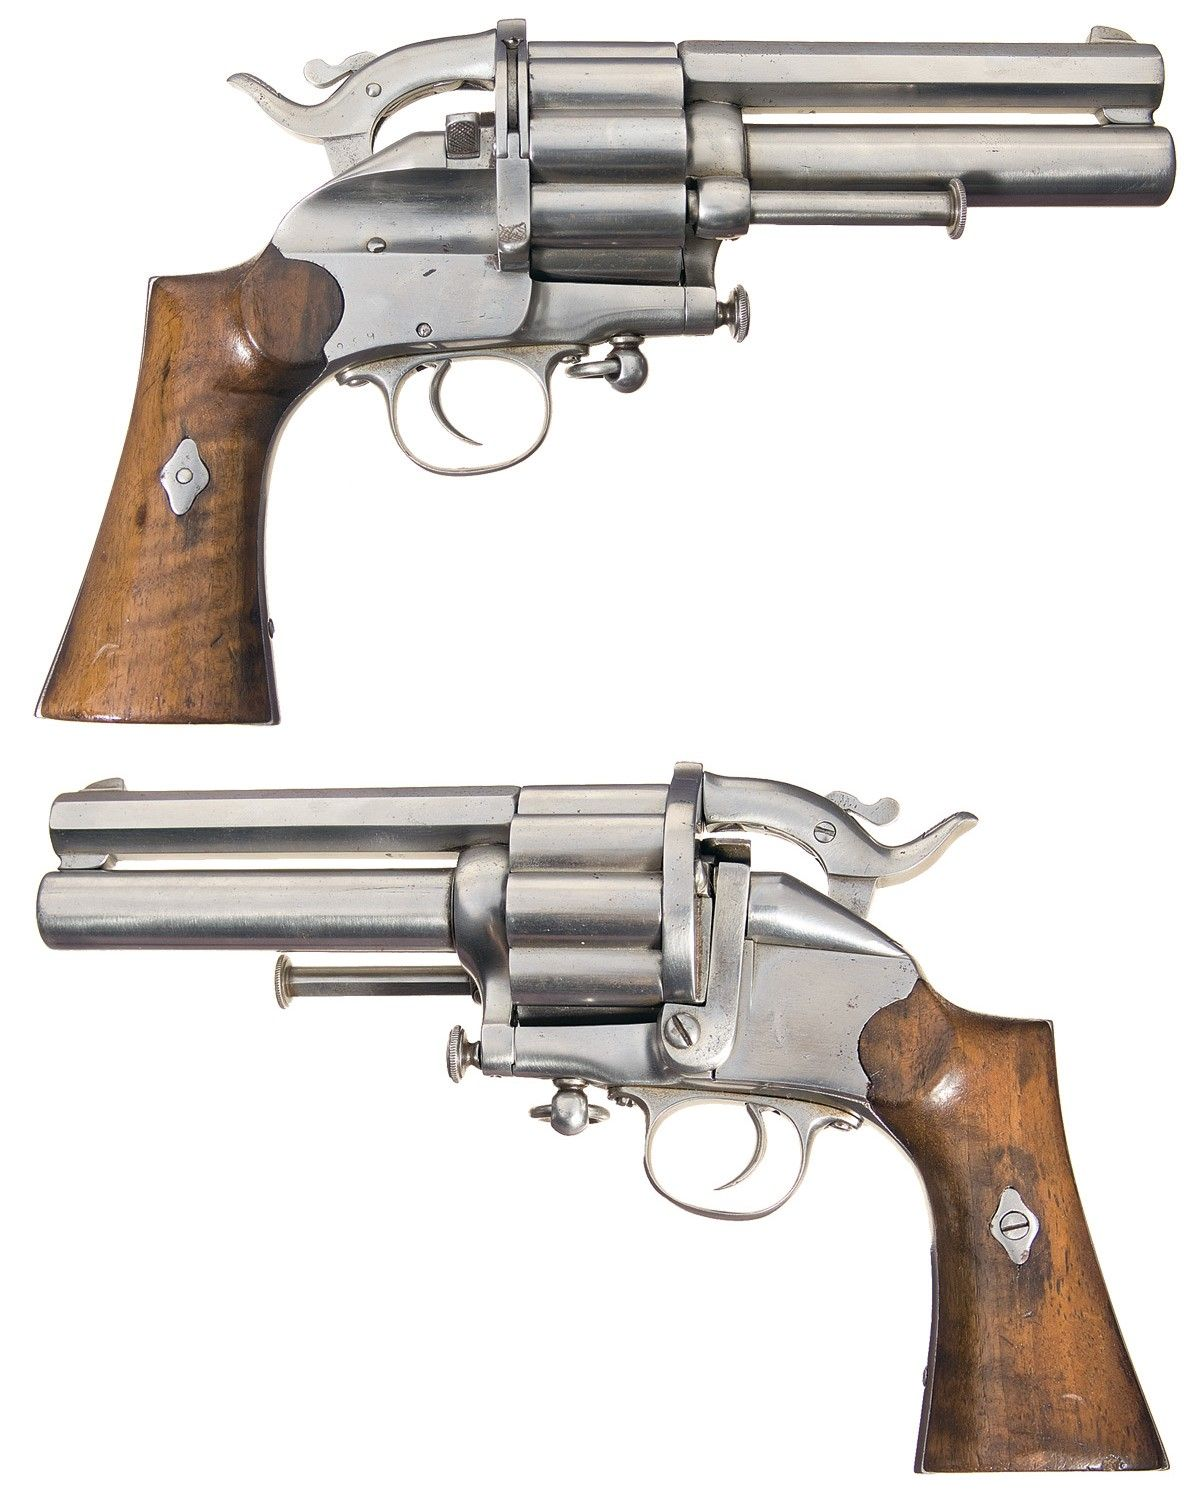 The last variation of the le mat revolvers based on a 1869 patent serial